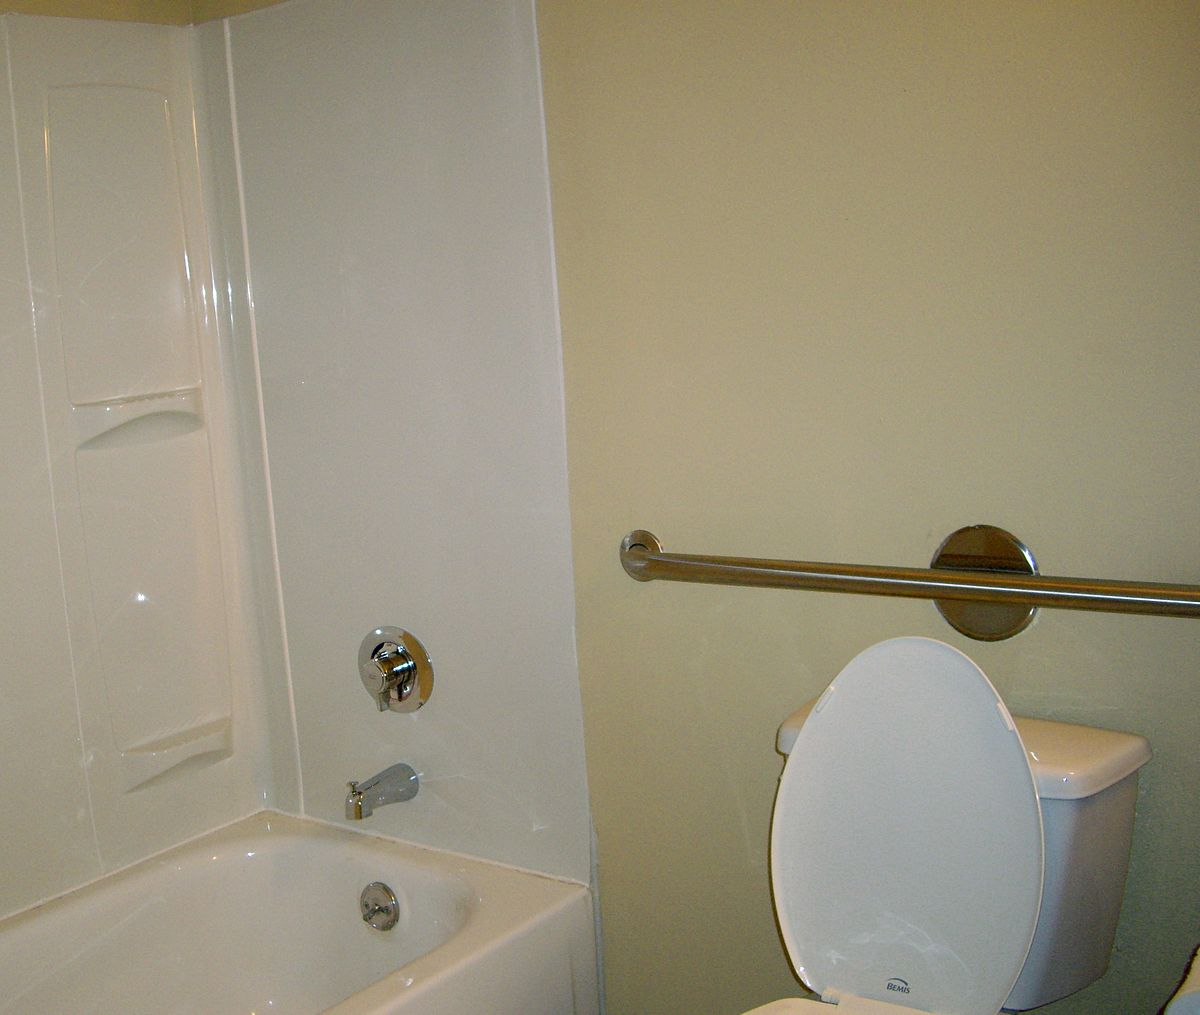 Bathtub Grab Bar Dimensions grab bar - wikipedia